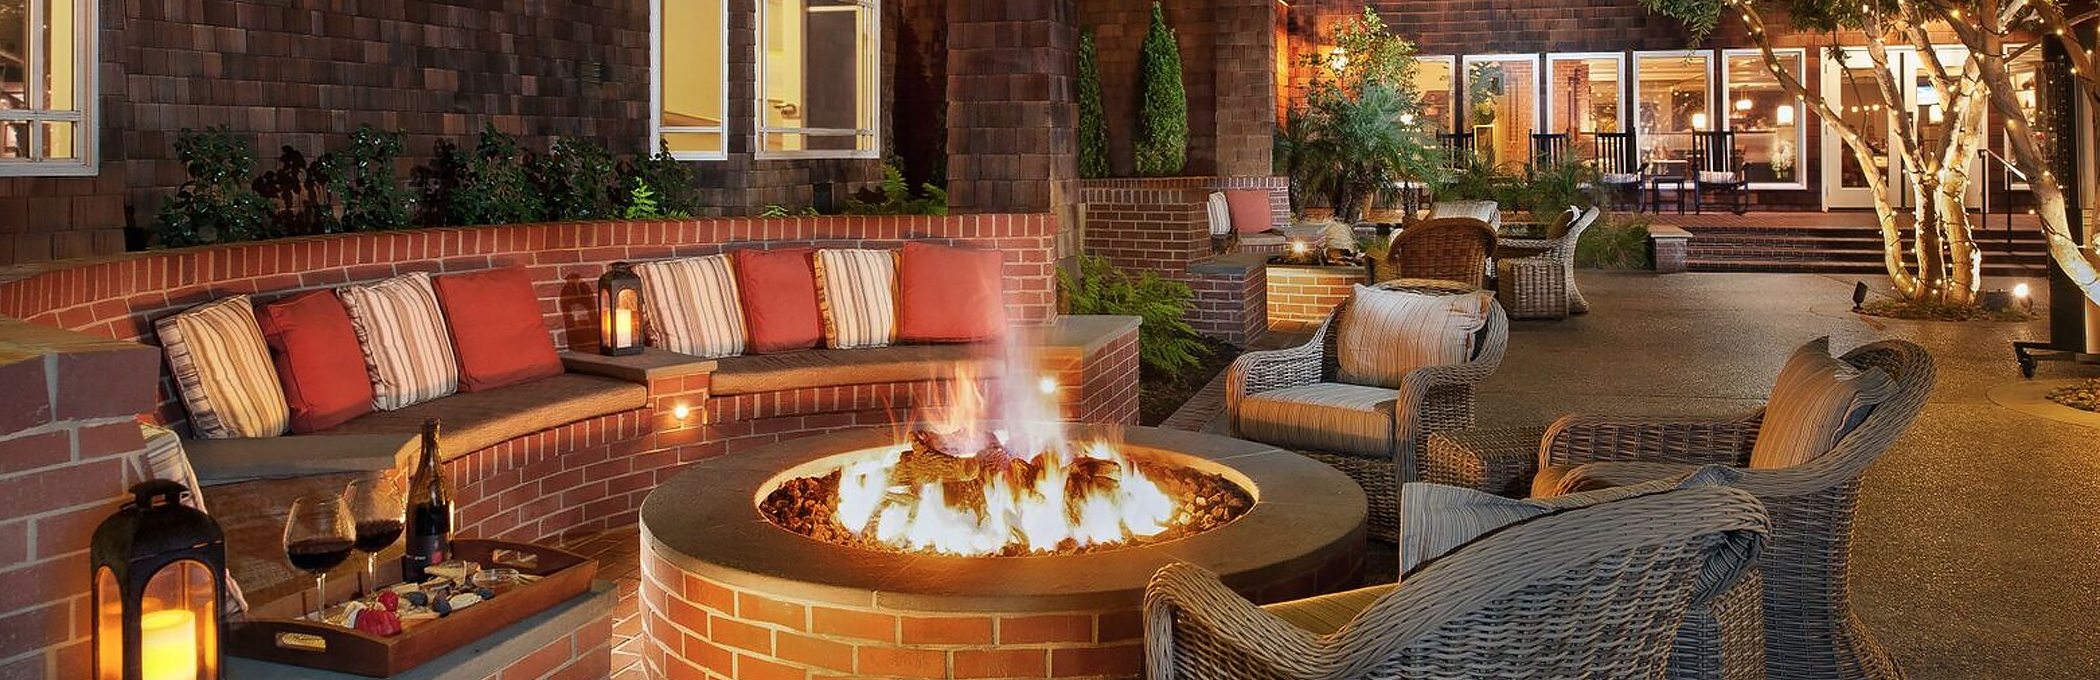 a brick seating area with chairs and pillows next to a firepit